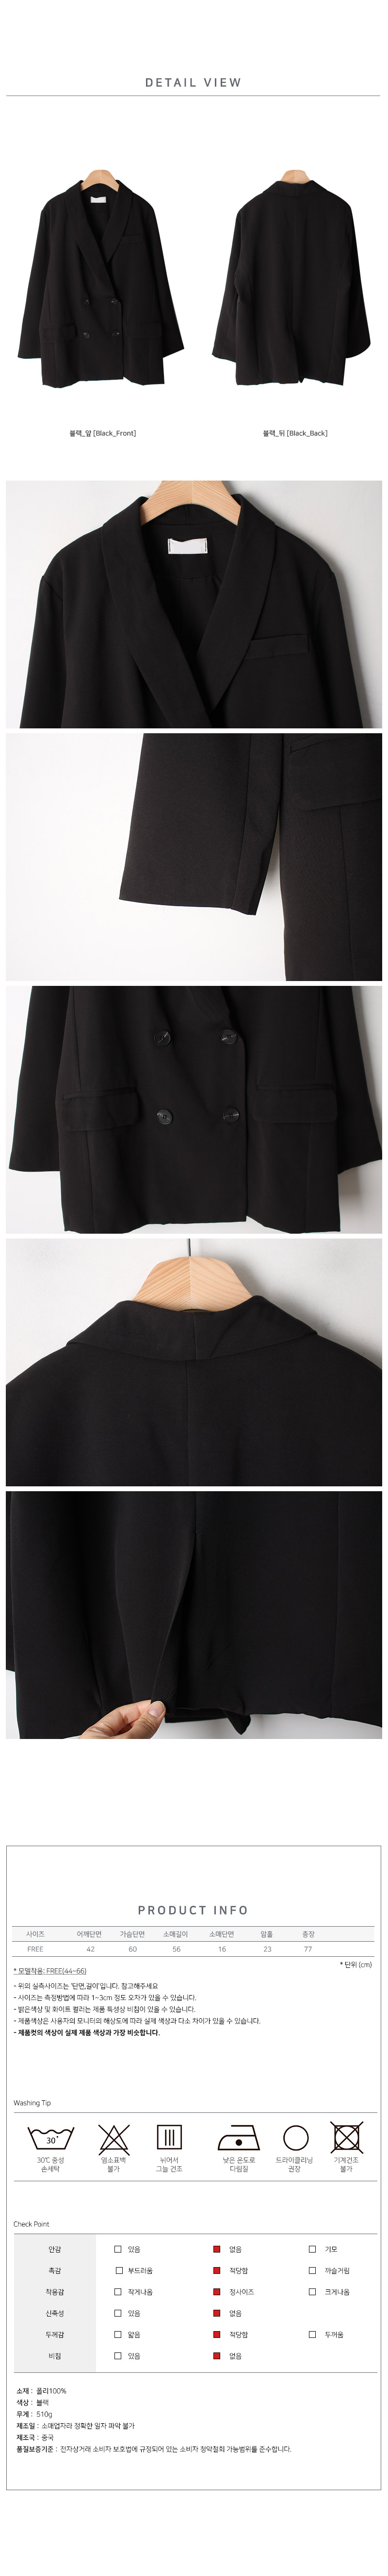 Le Maison Double Button Jacket